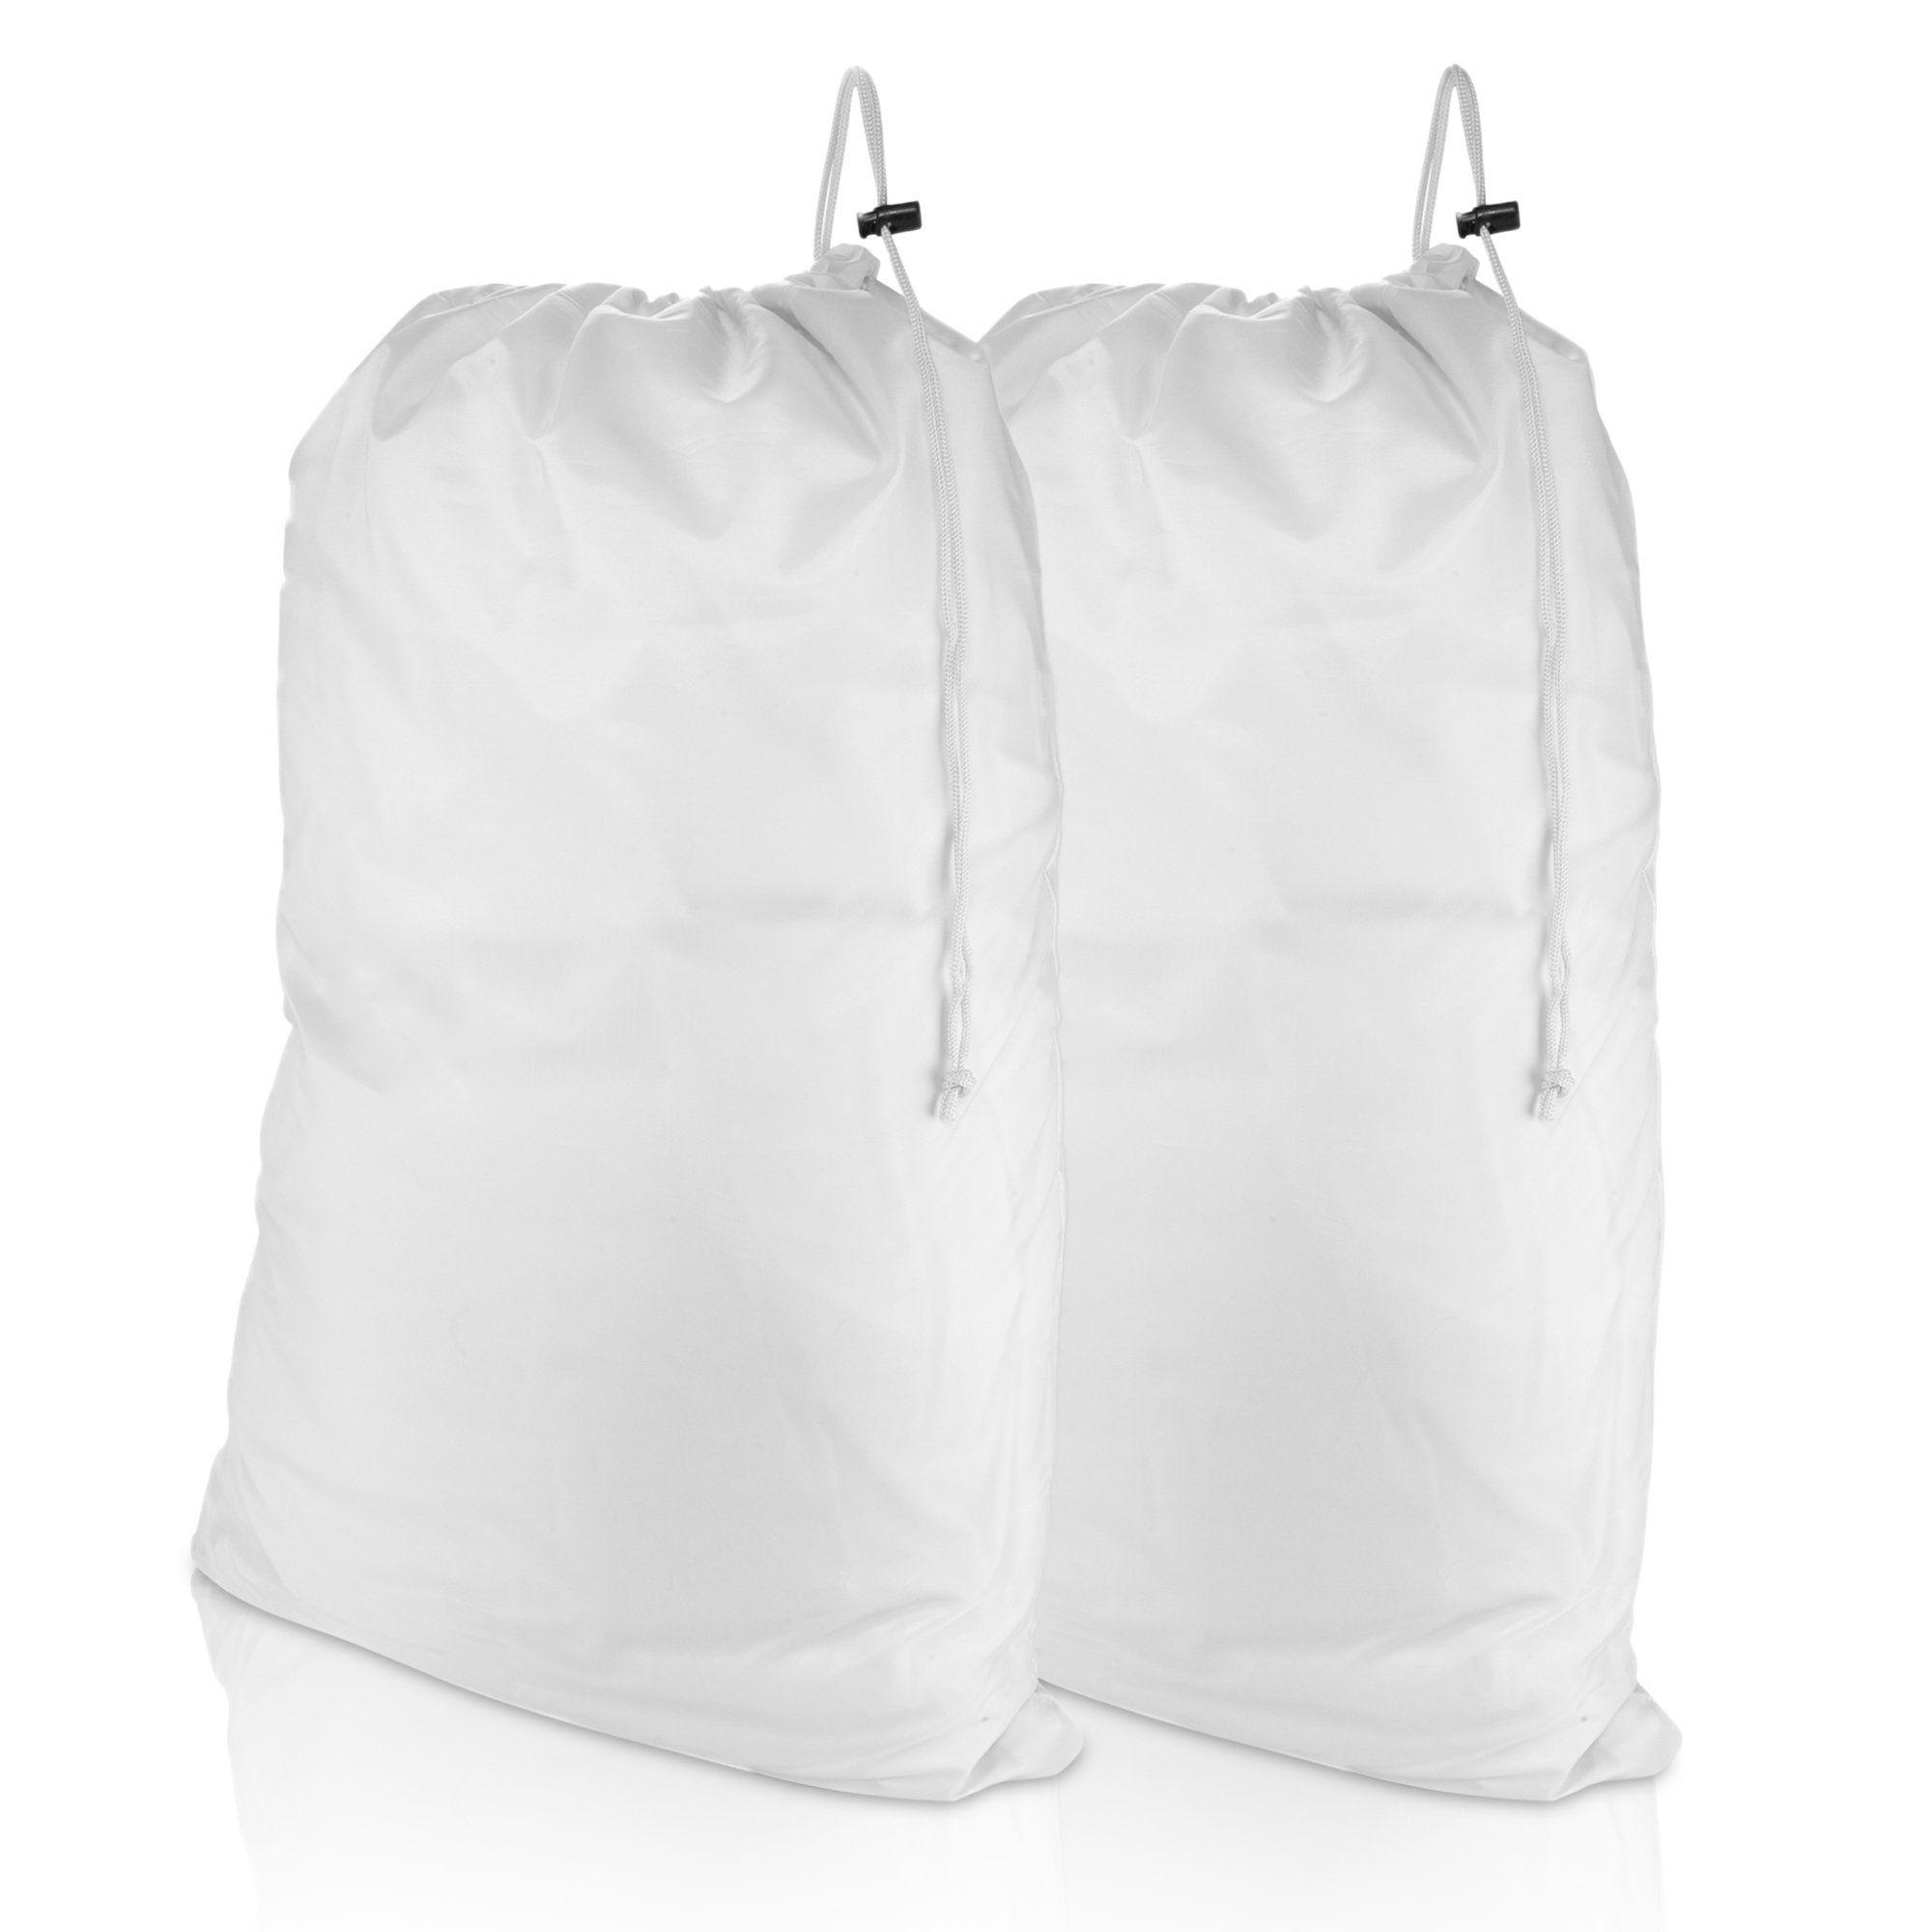 Large Laundry Bag 2 Pack